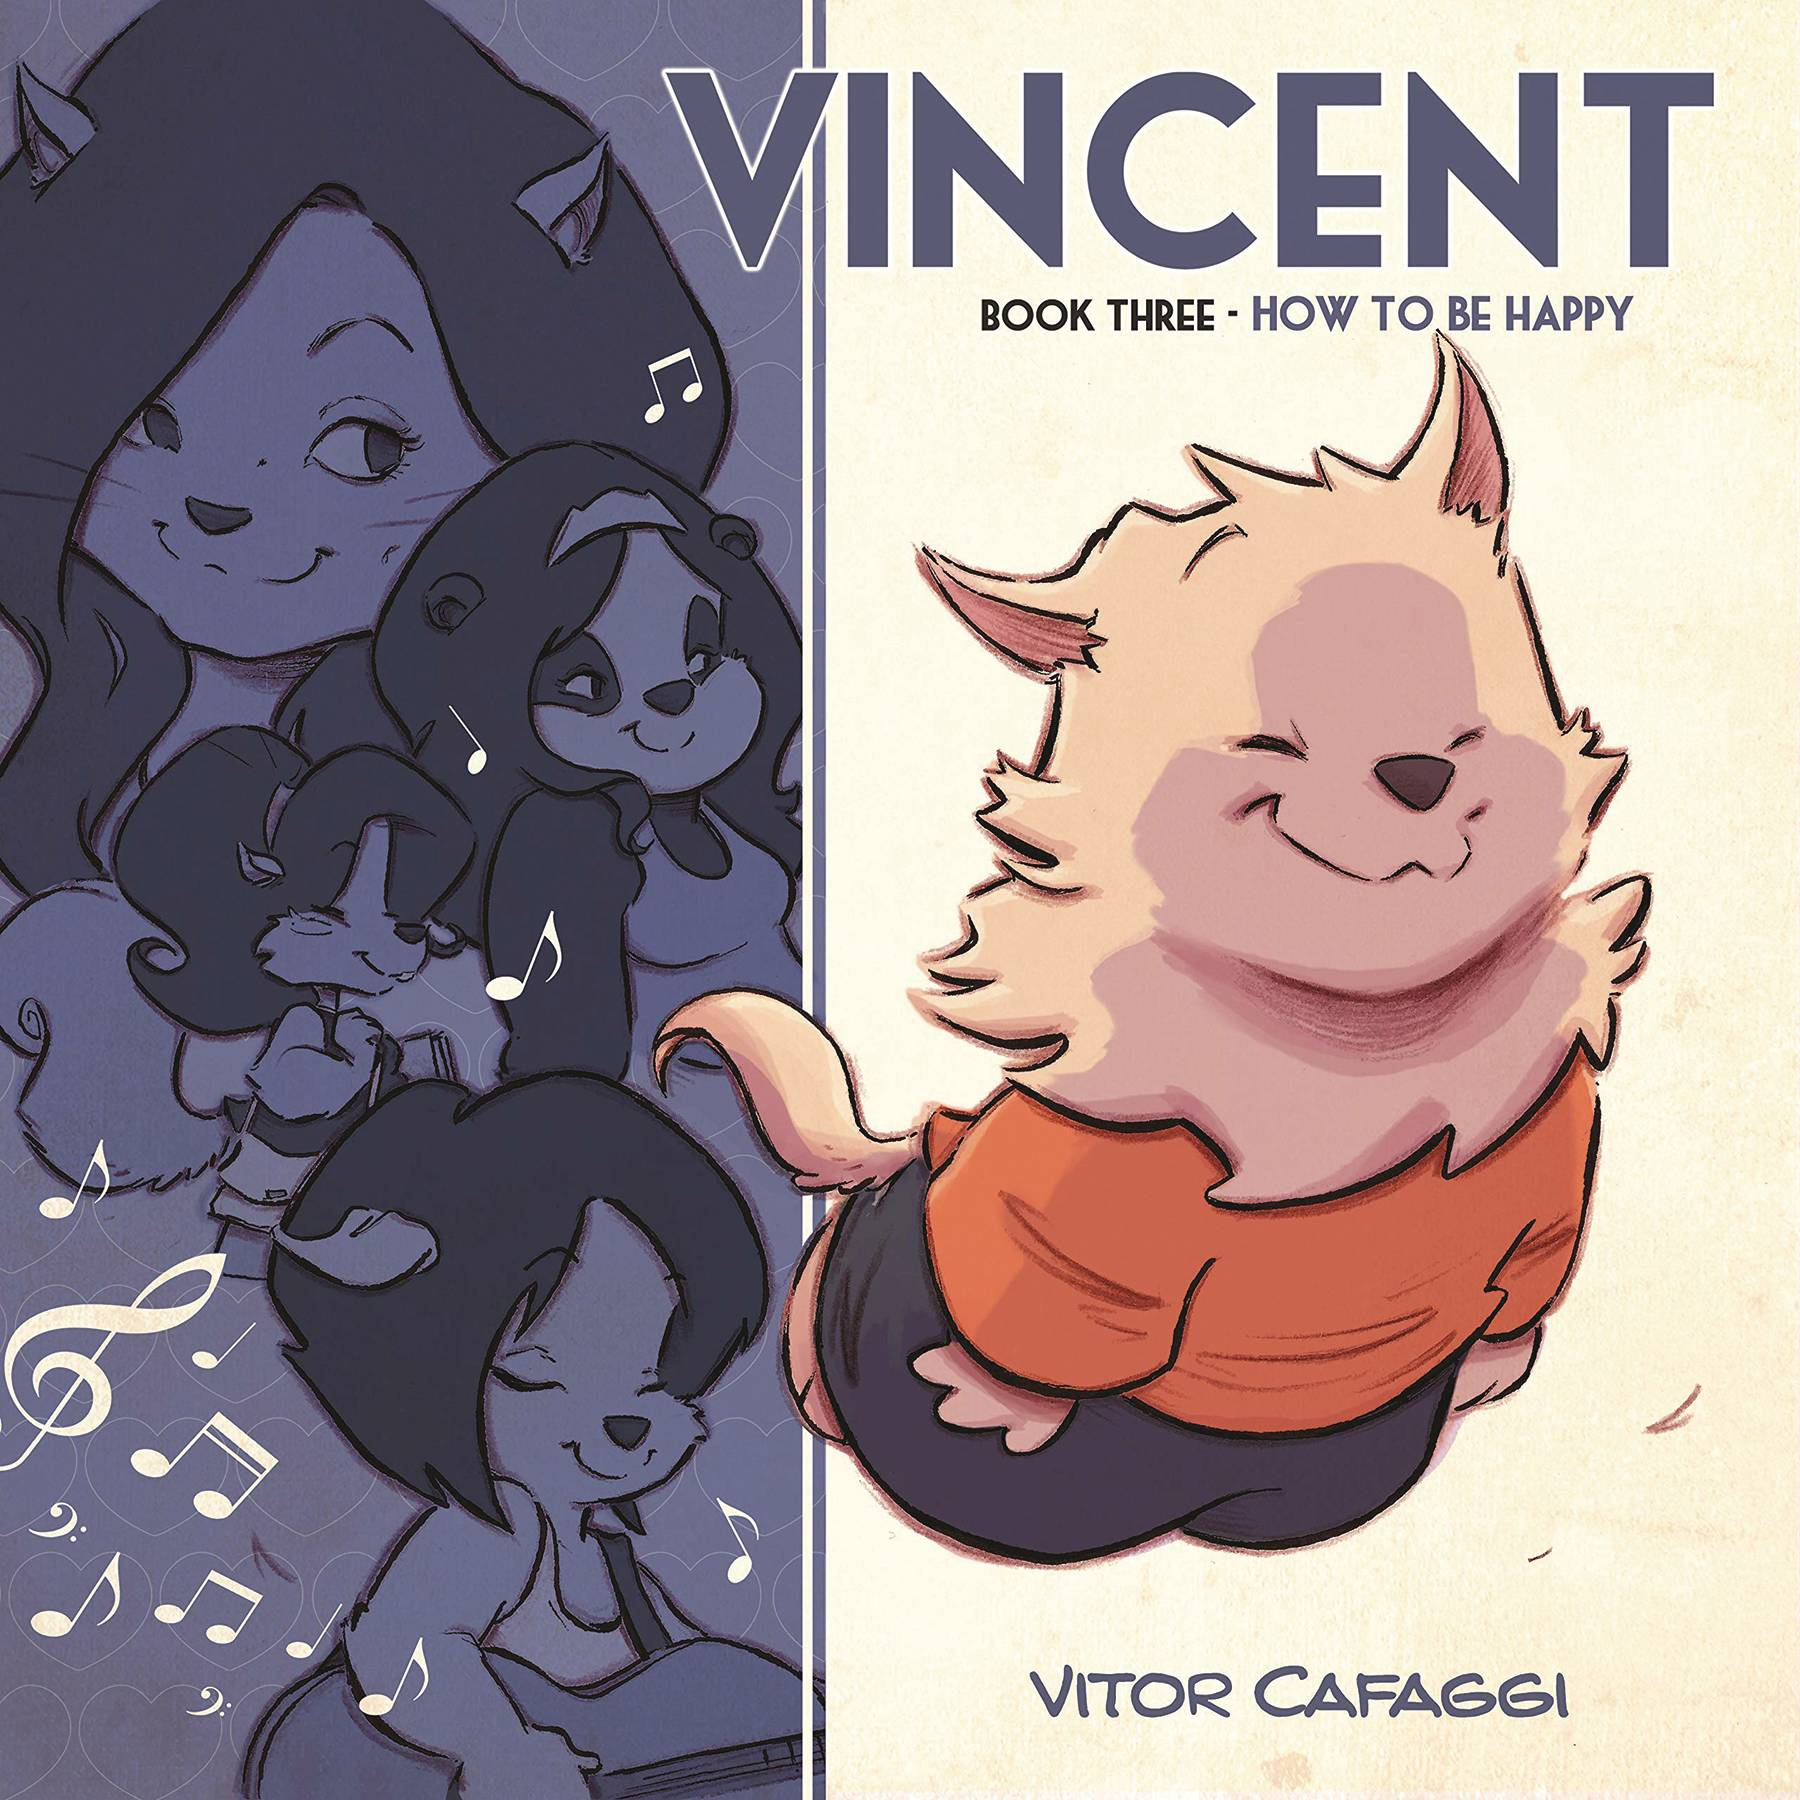 VINCENT GN BOOK 03 HOW TO BE HAPPY (RES)